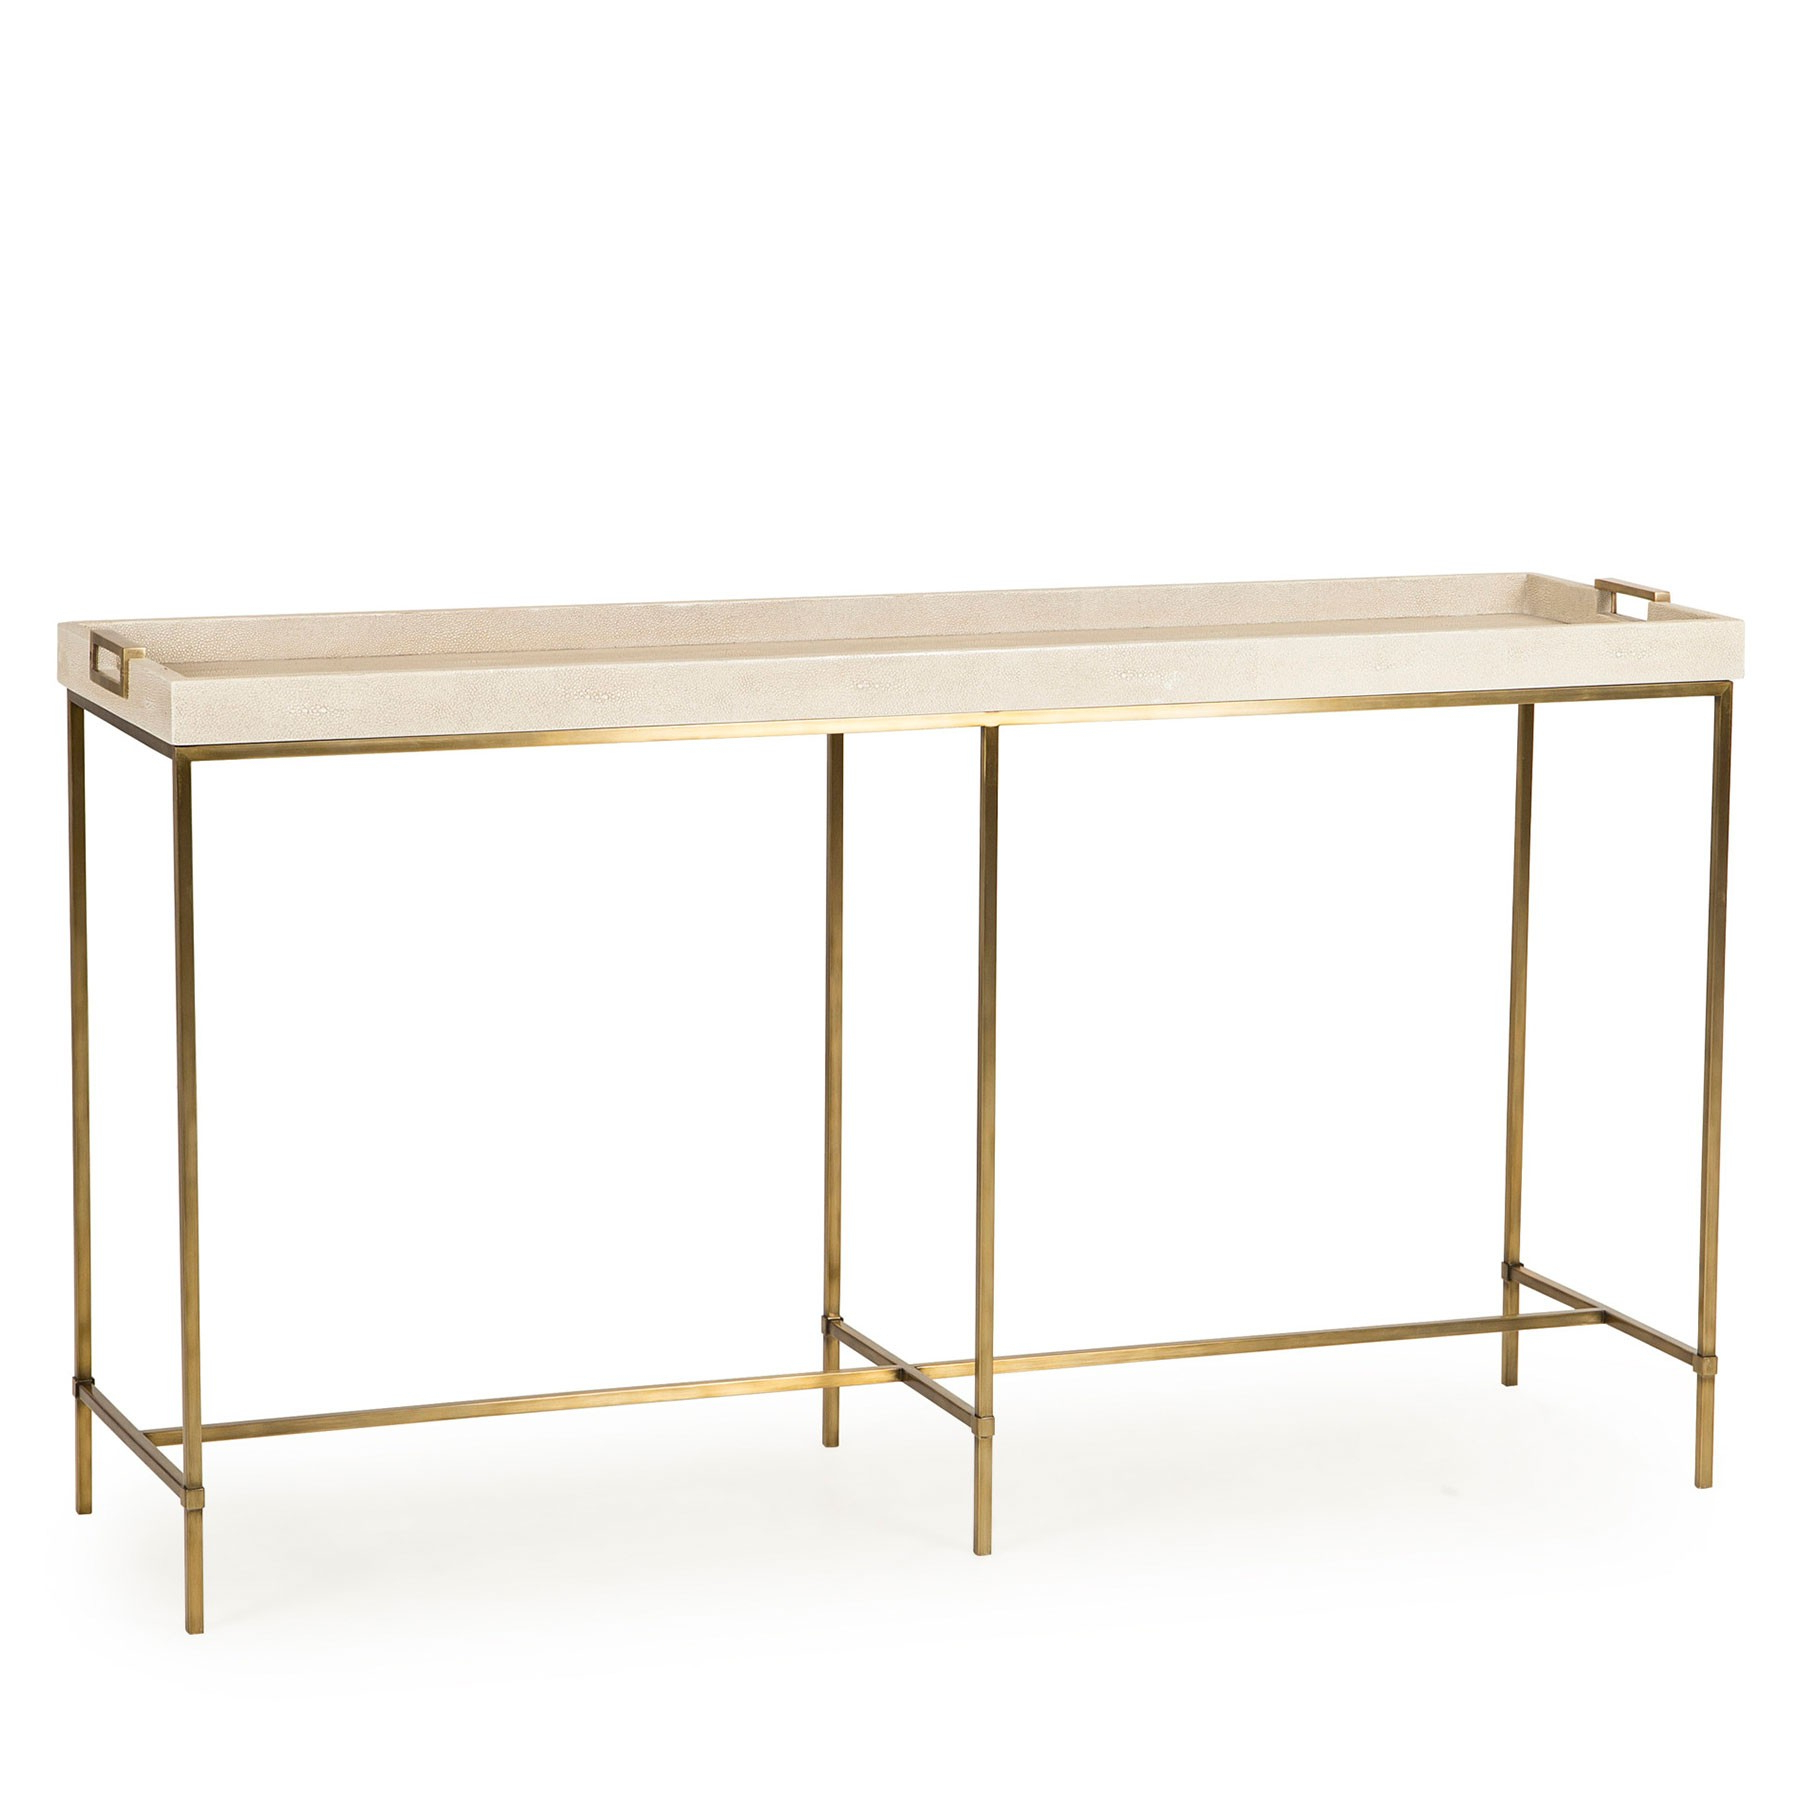 Lexi Tray Console Table – Ivory Shagreen | Resource Decor 0801085 For Faux Shagreen Console Tables (View 9 of 20)